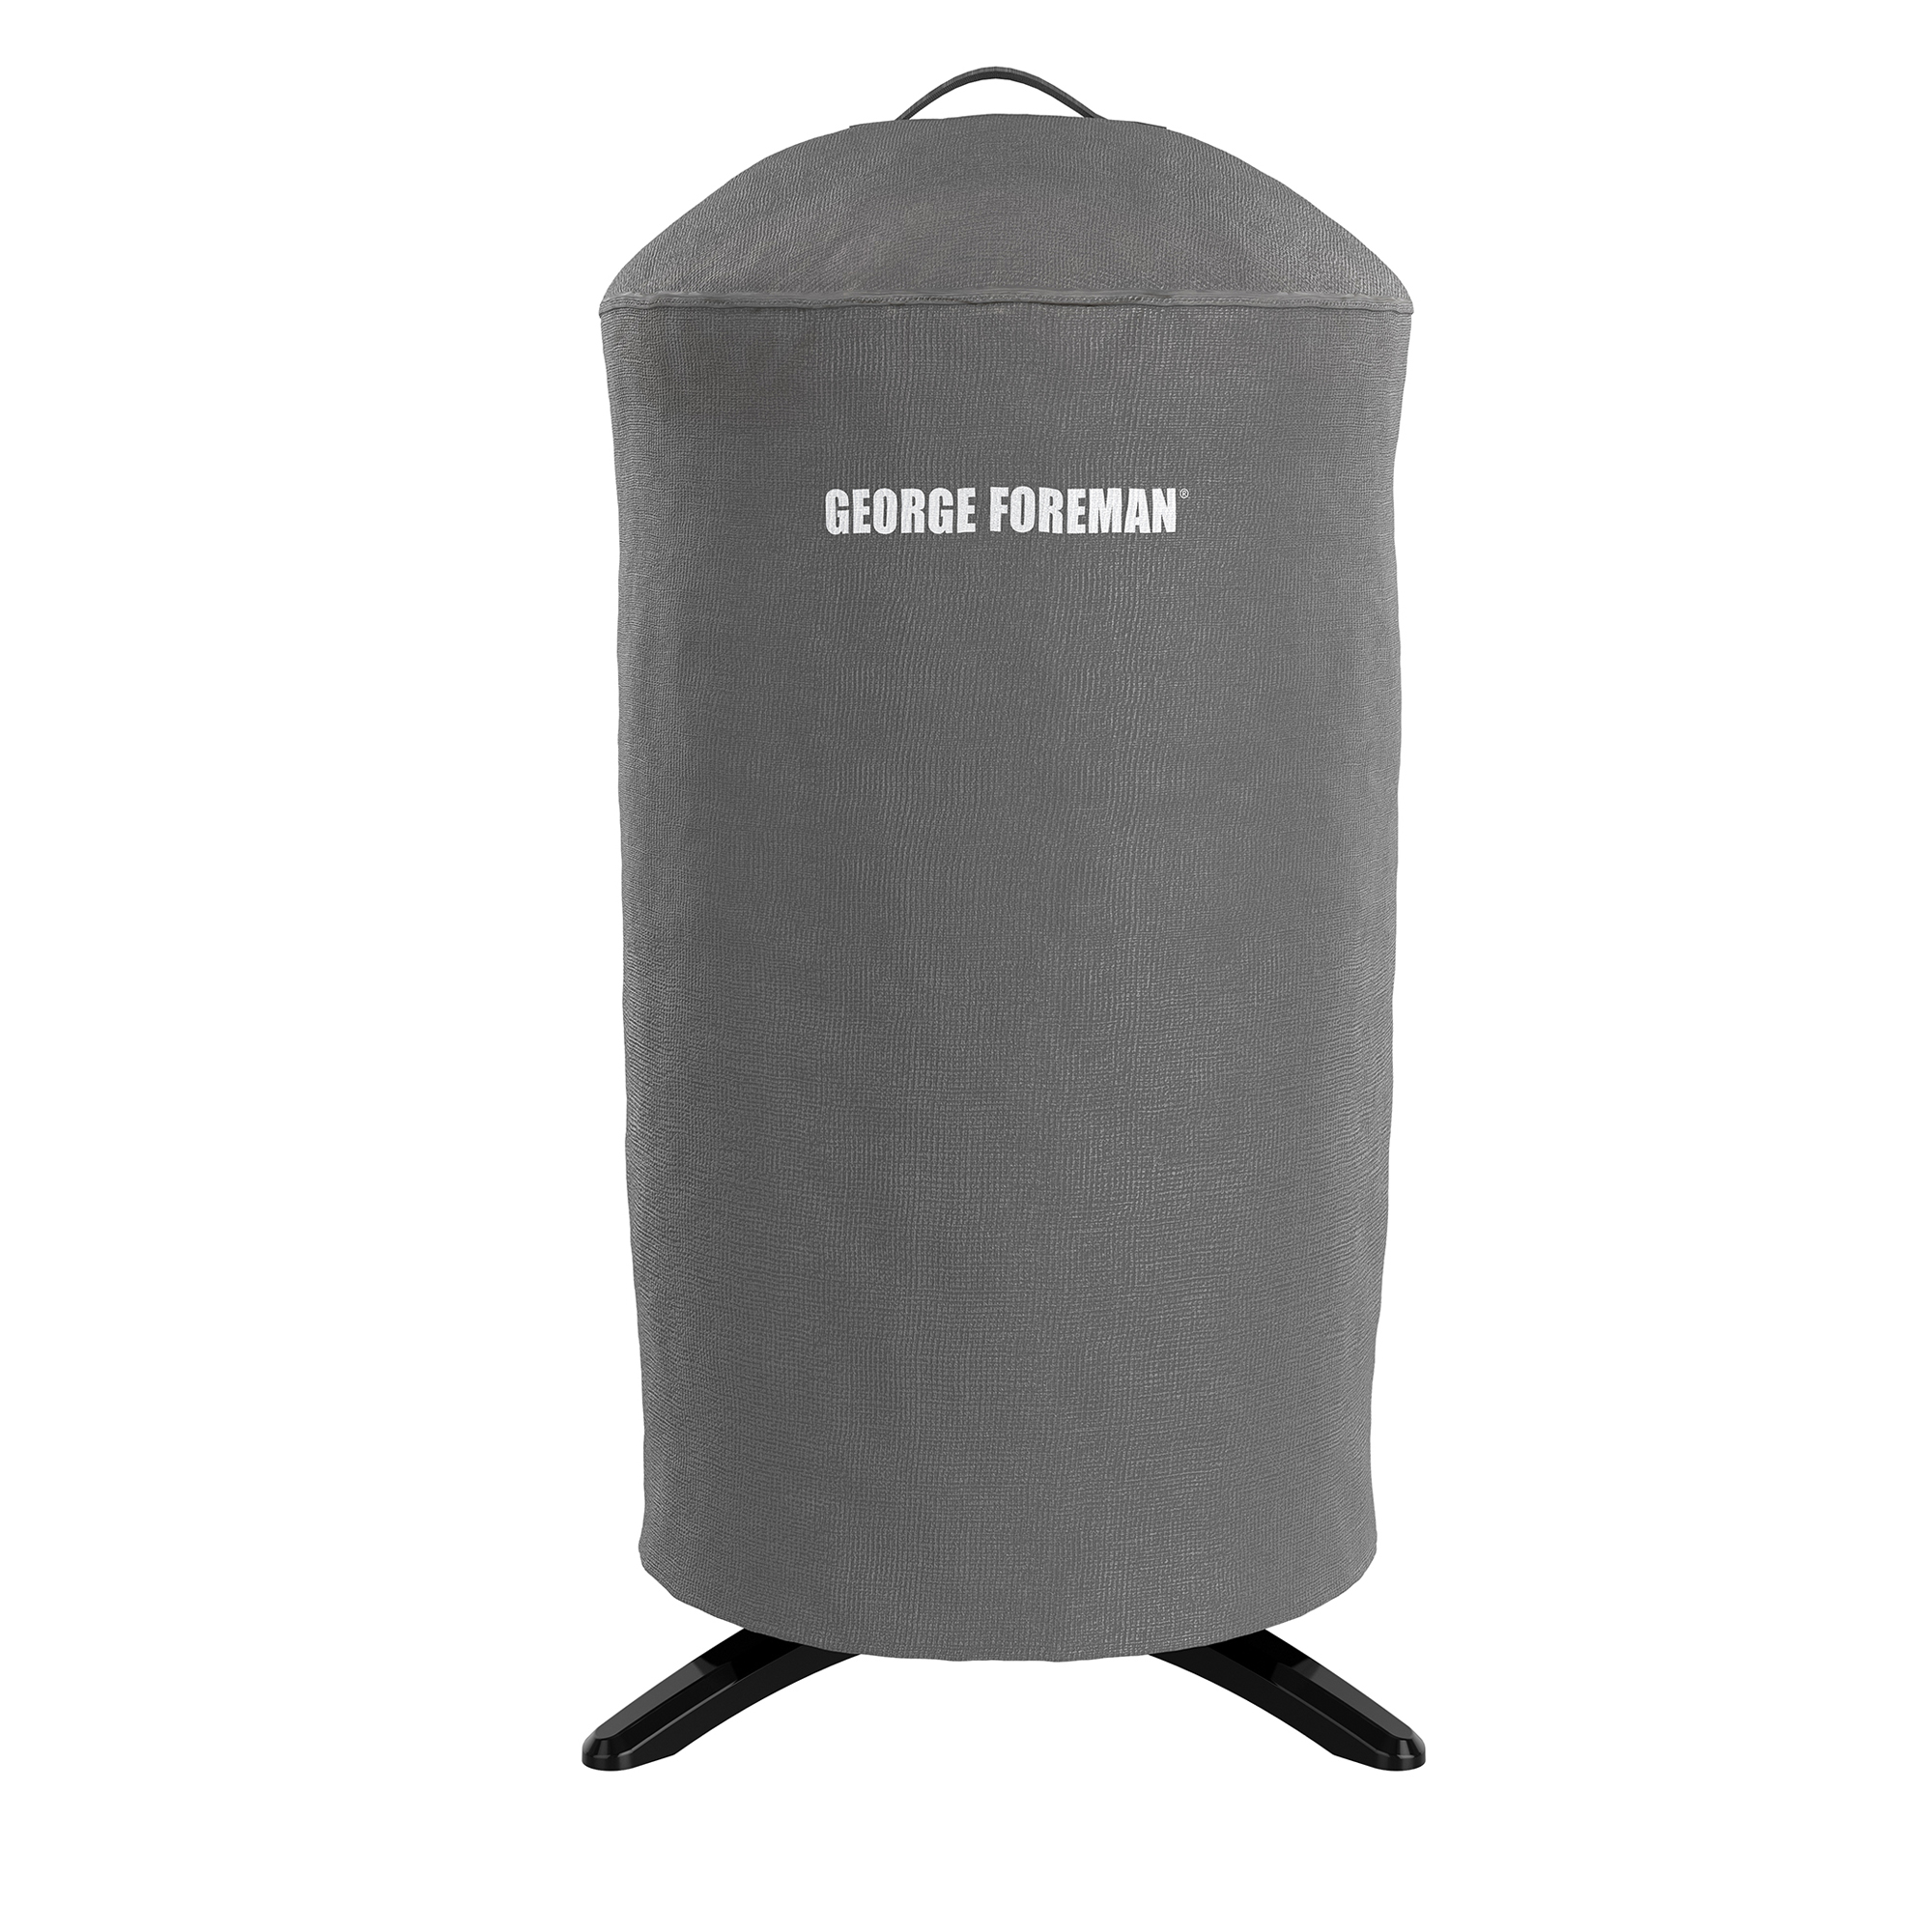 george foreman indoor outdoor round grill cover gfa240rdcg - Grill Covers